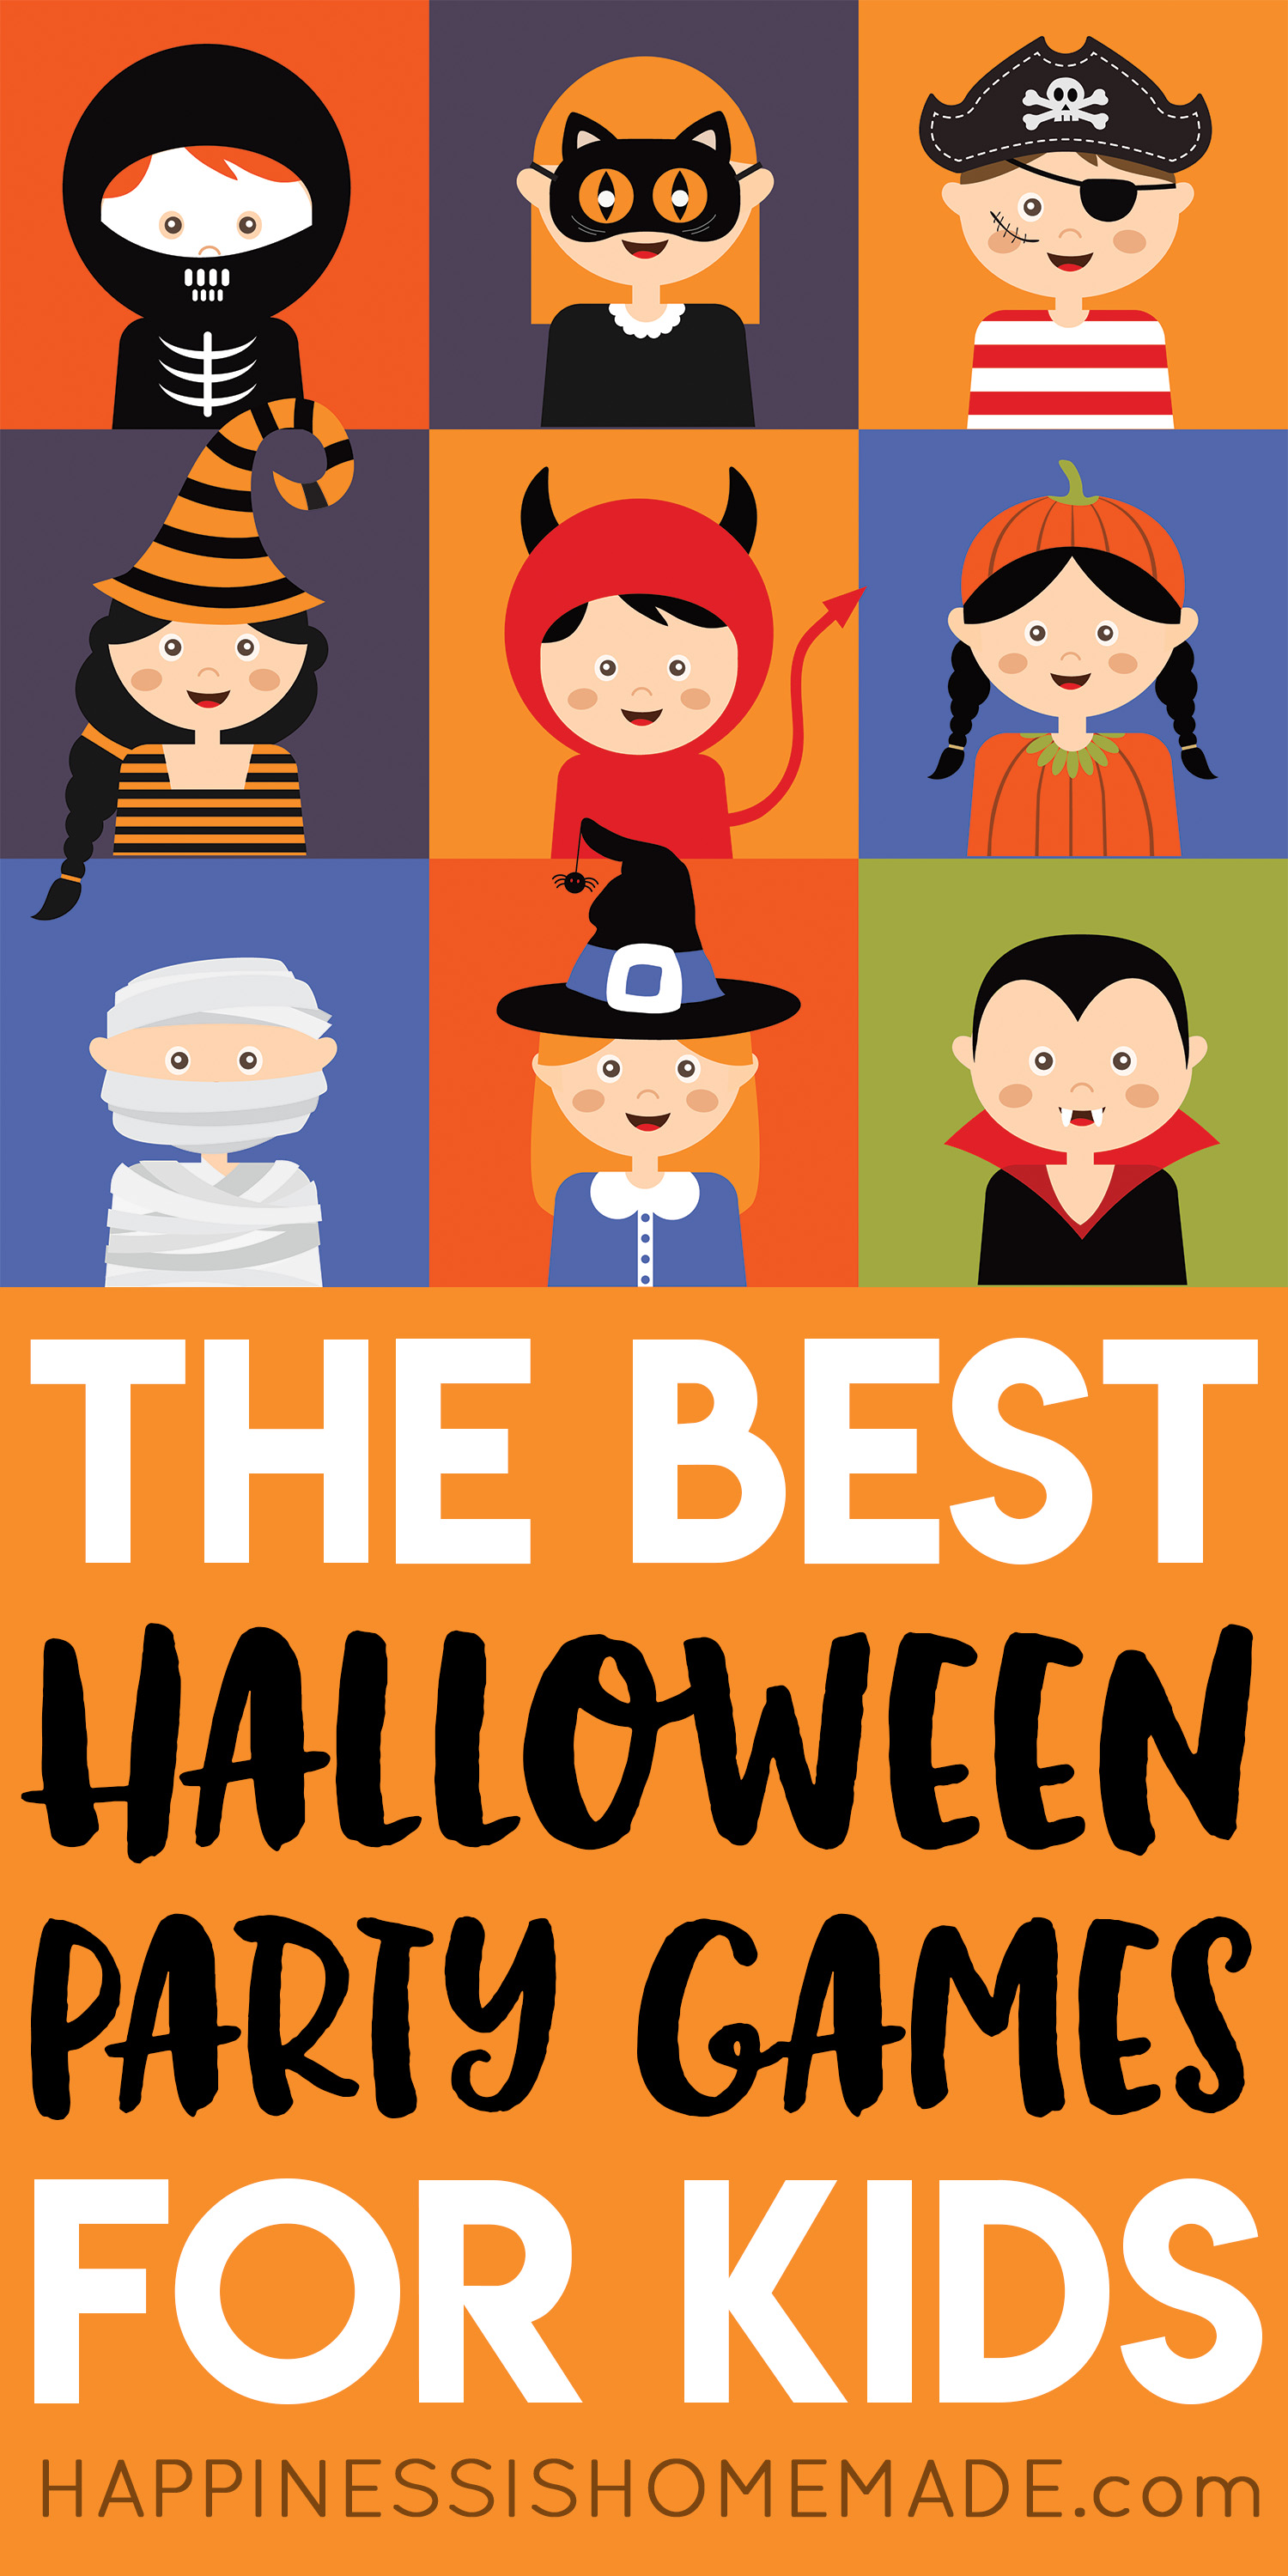 The Best Halloween Games for Kids - Halloween Party Games for Kids